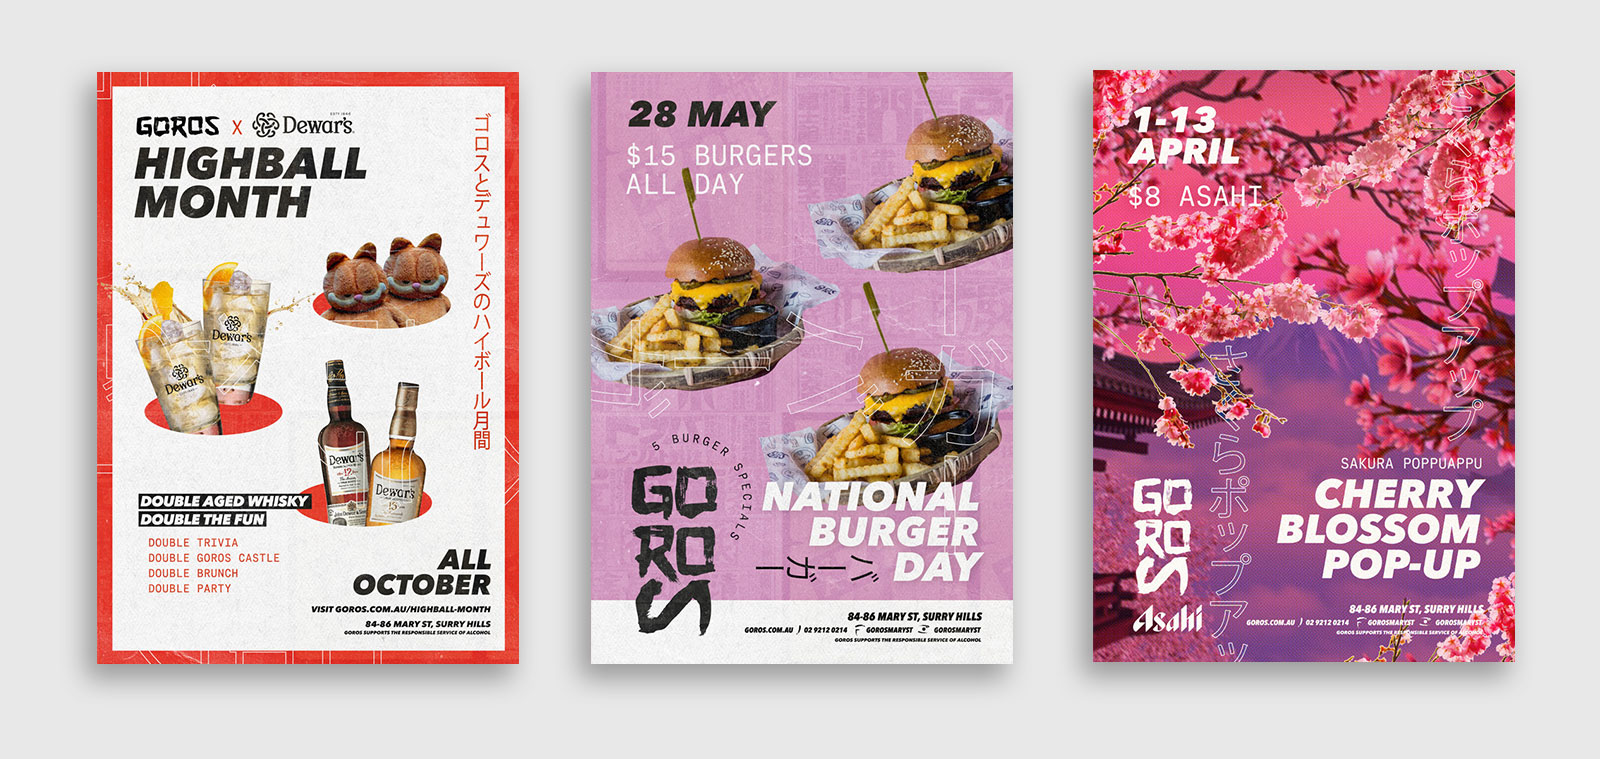 graphic design poster designs for events at goros sydney